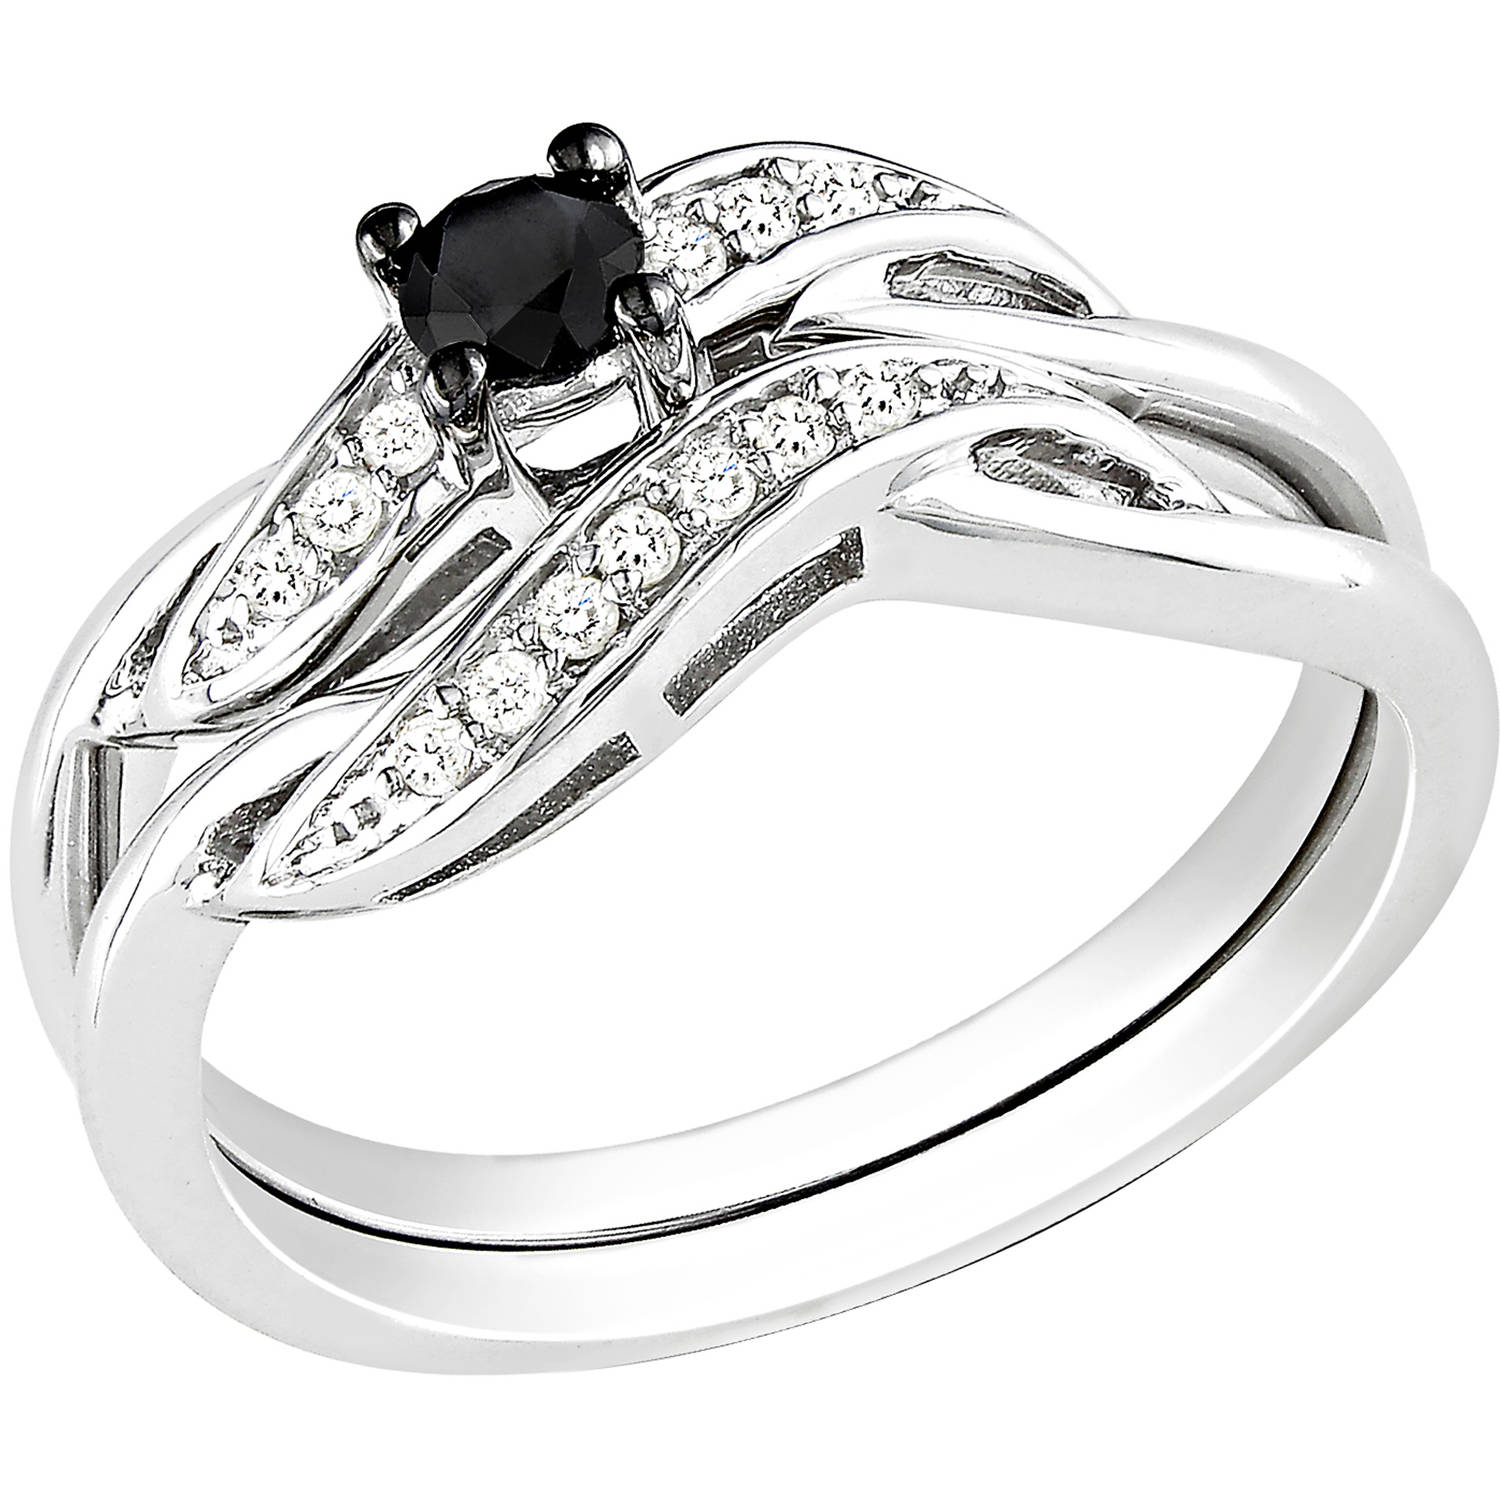 Asteria 1 4 Carat T W Black And White Diamond Sterling Silver Bridal Ring Set